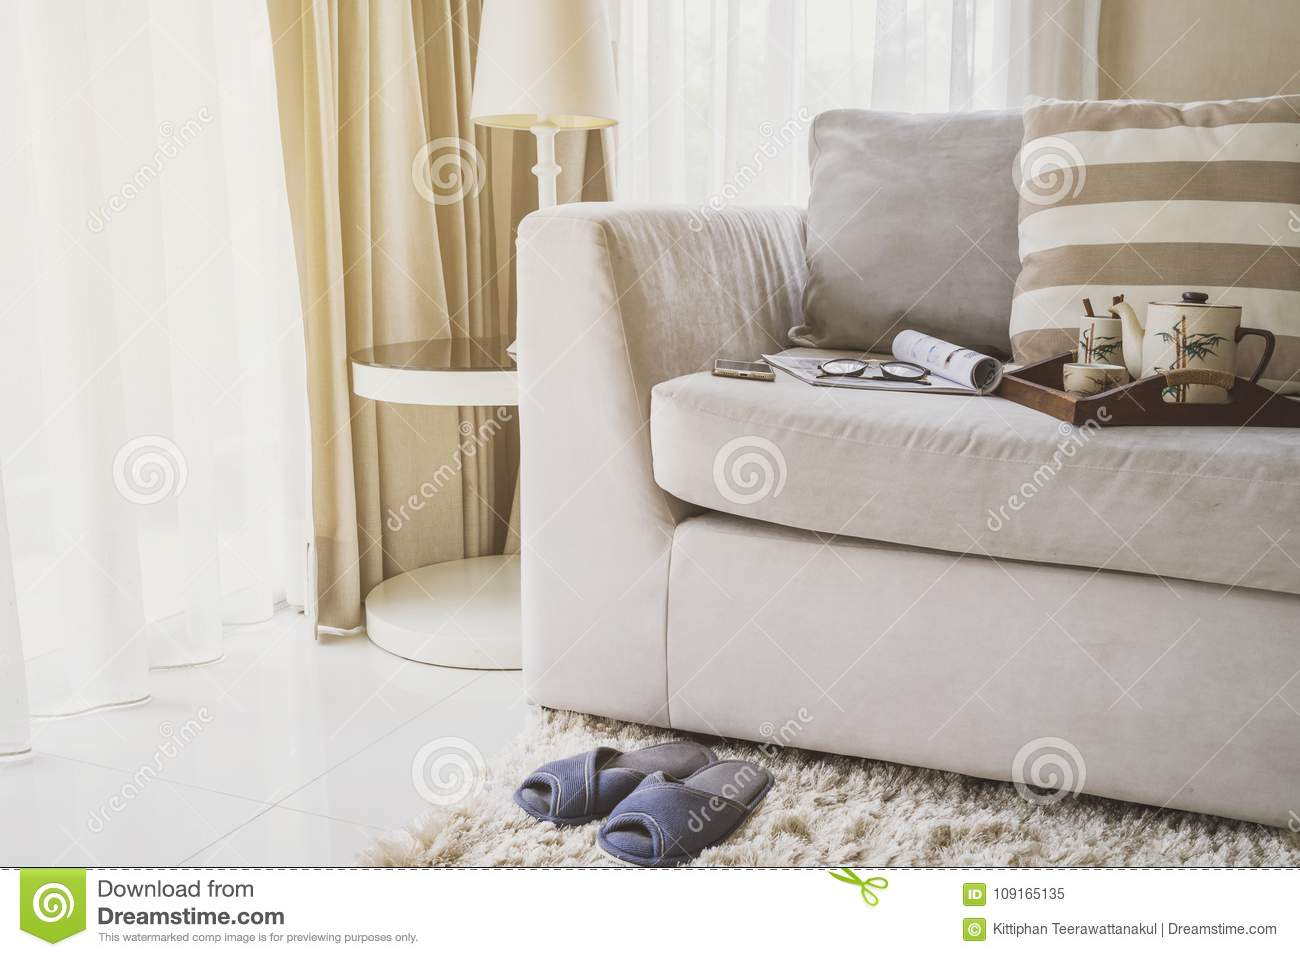 Cup Of Tea On Wooden Tray On Sofa In Living Room Stock Image - Image ...